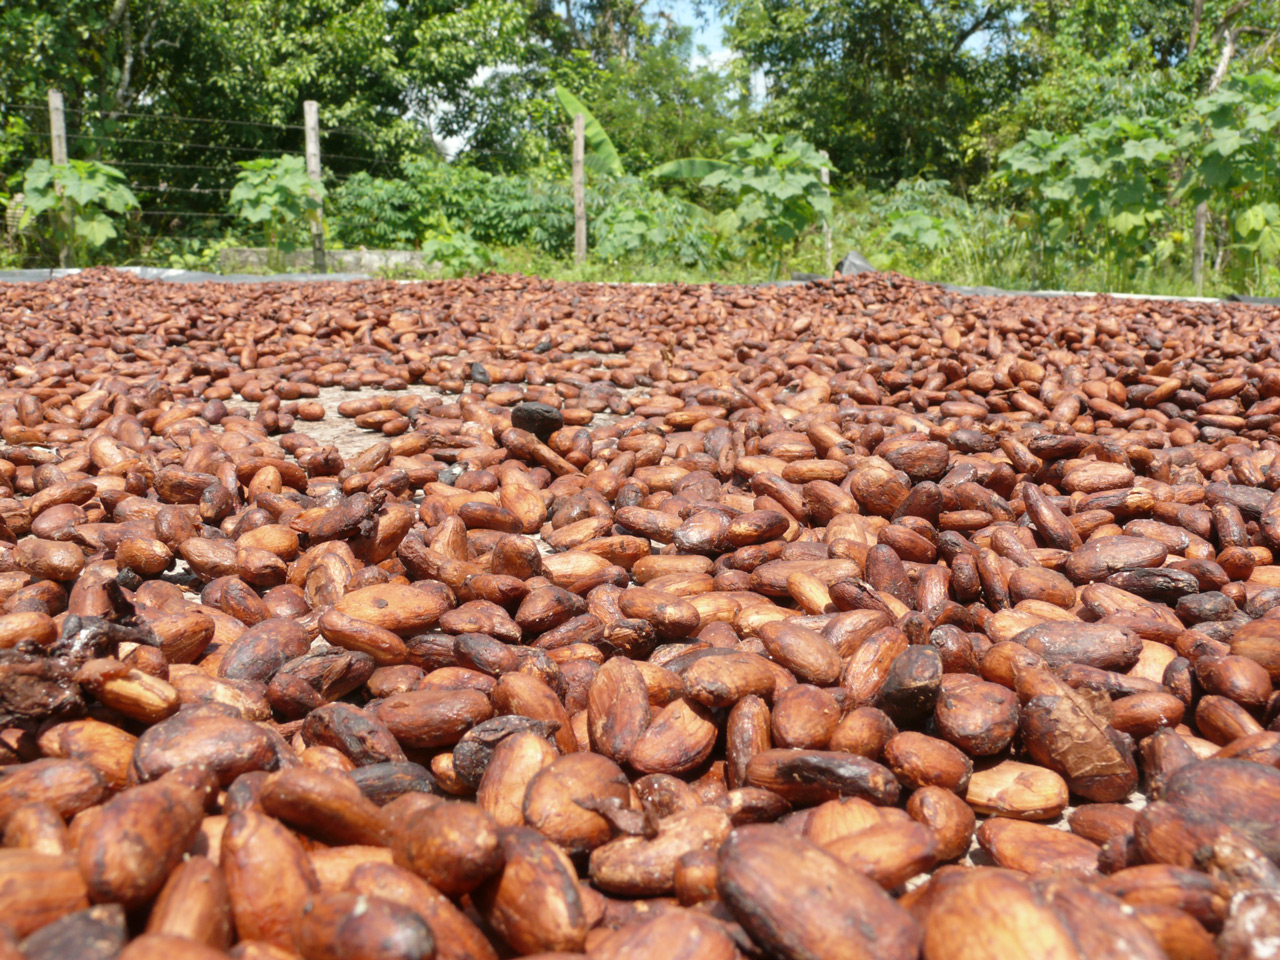 Cacao in its purest raw state